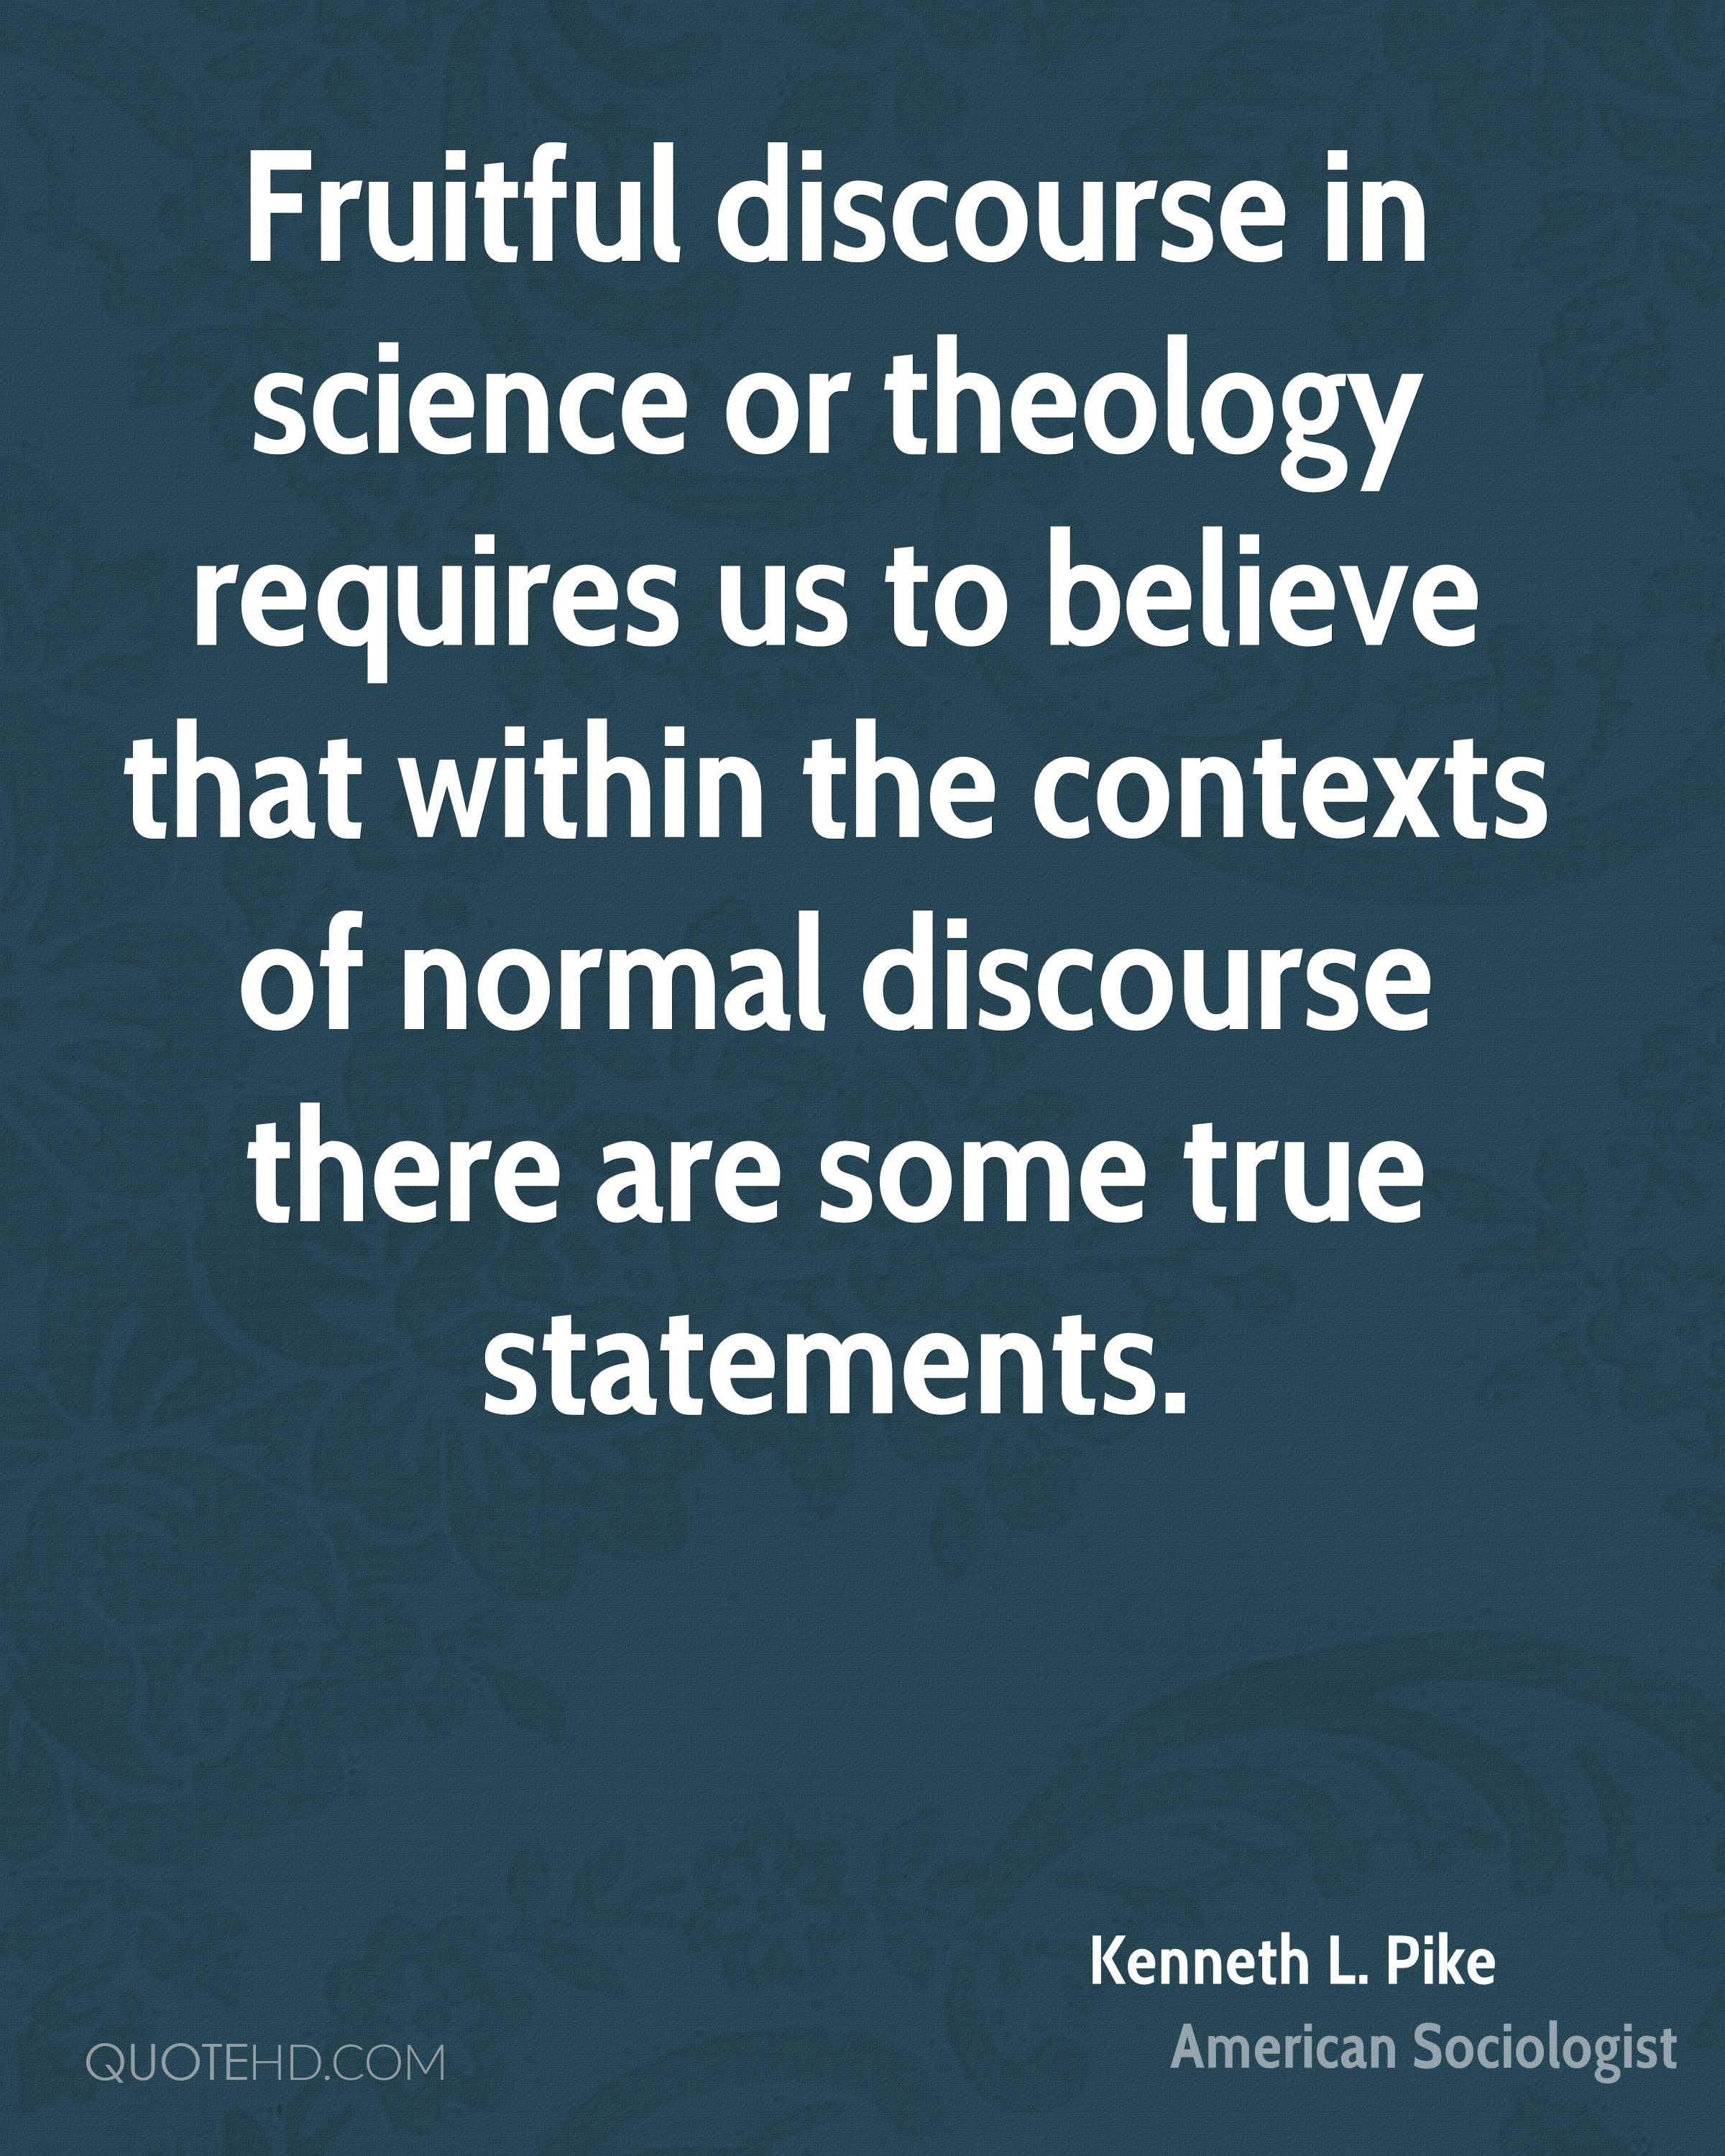 Fruitful discourse in science or theology requires us to believe that within the contexts of normal discourse there are some true statements.